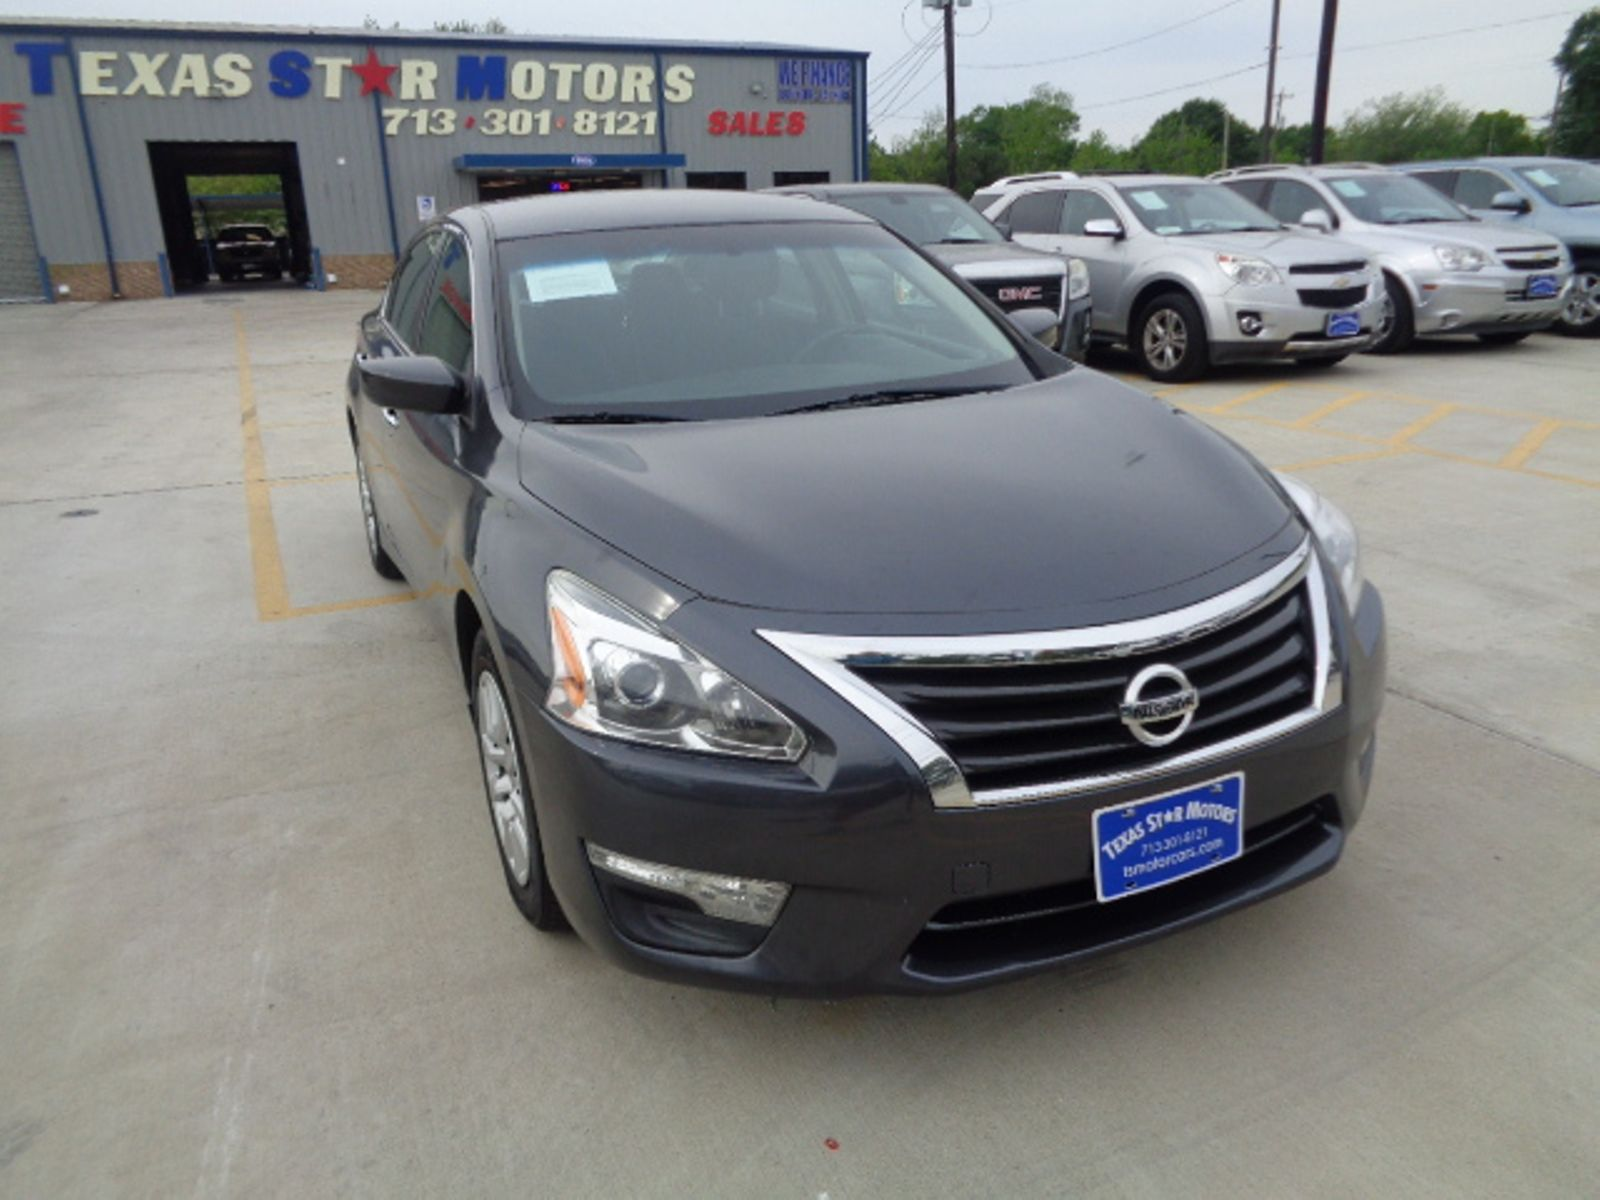 nissan nashville brown tn auctions view auto in salvage carfinder lot altima copart en on certificate sale left for online